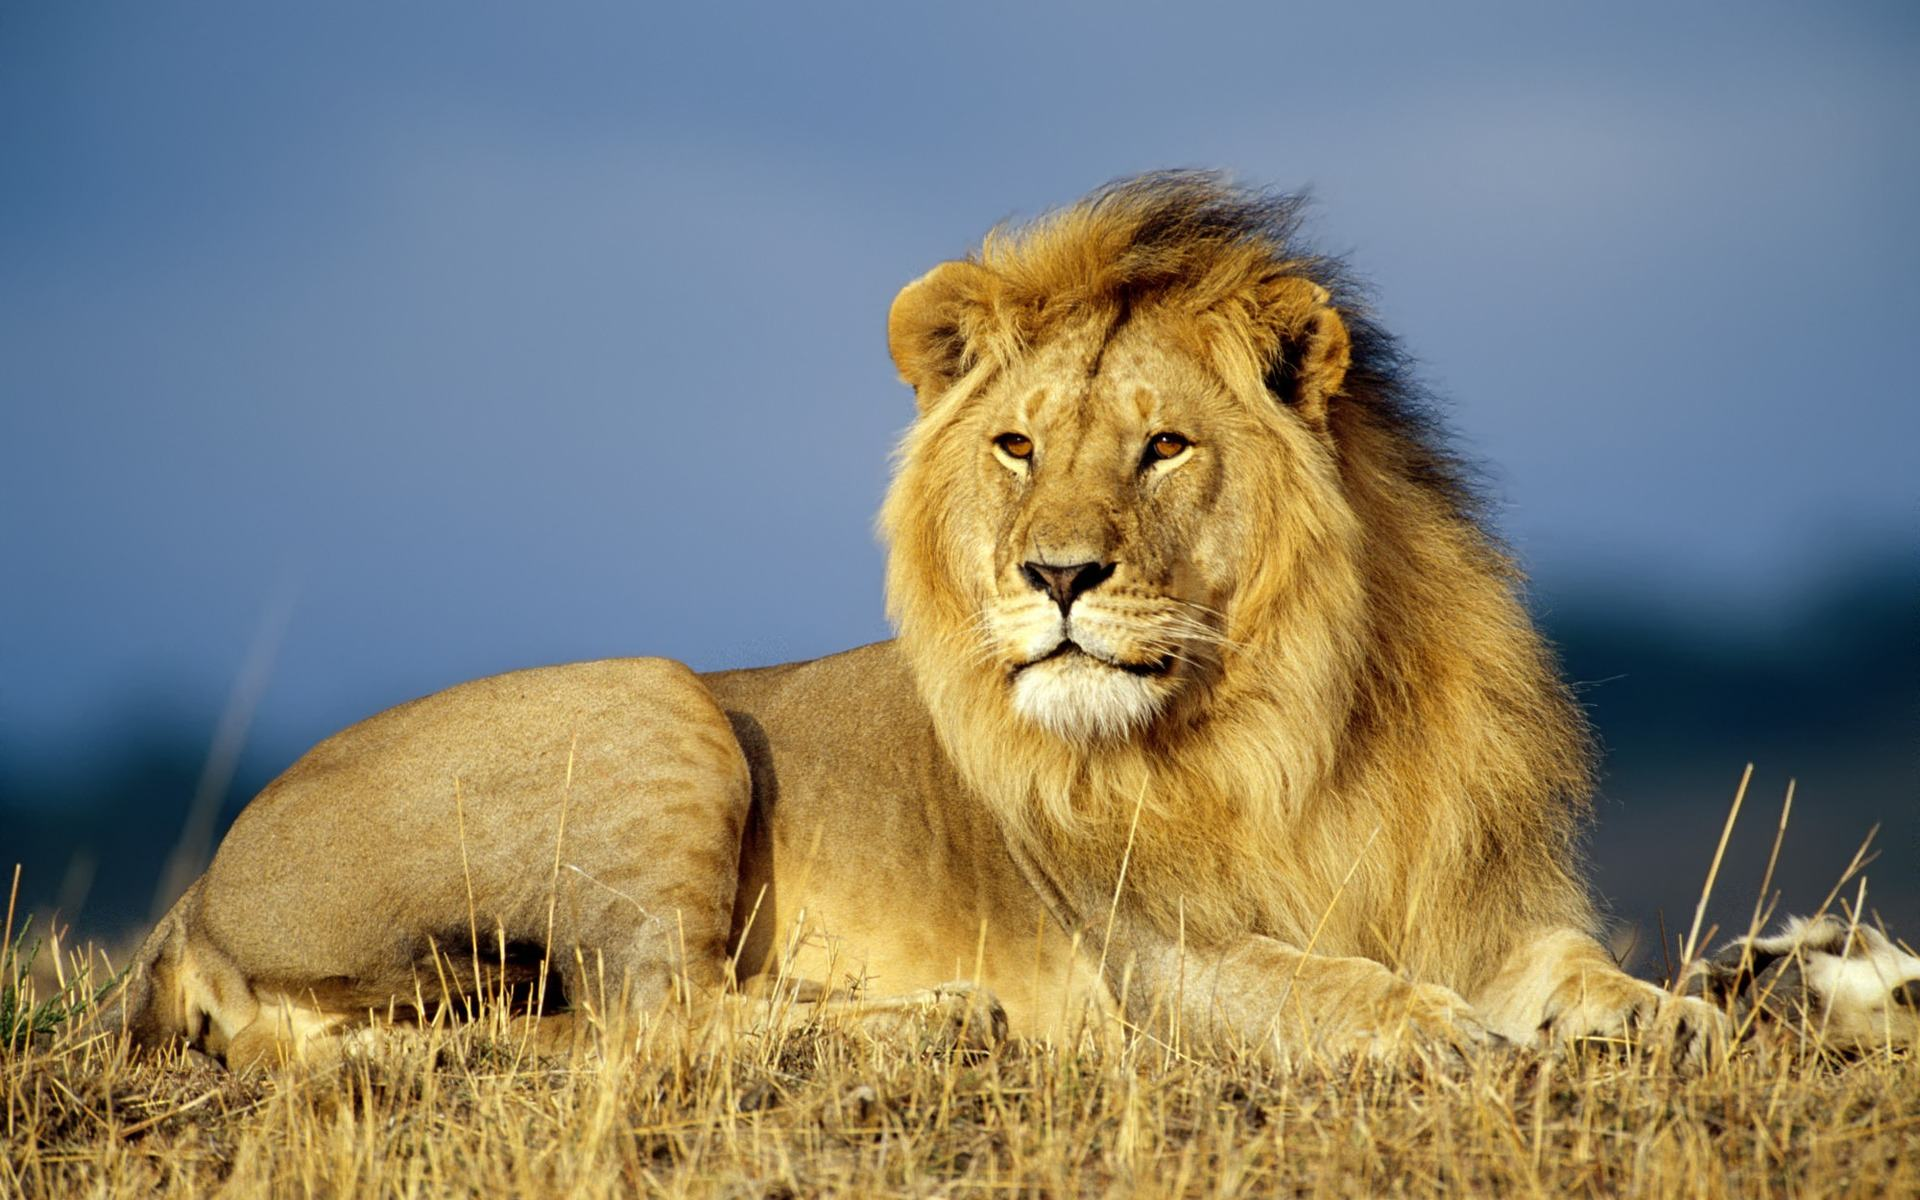 ... Backgrounds - Lions Animals Wallpapers Download Popular Screensavers